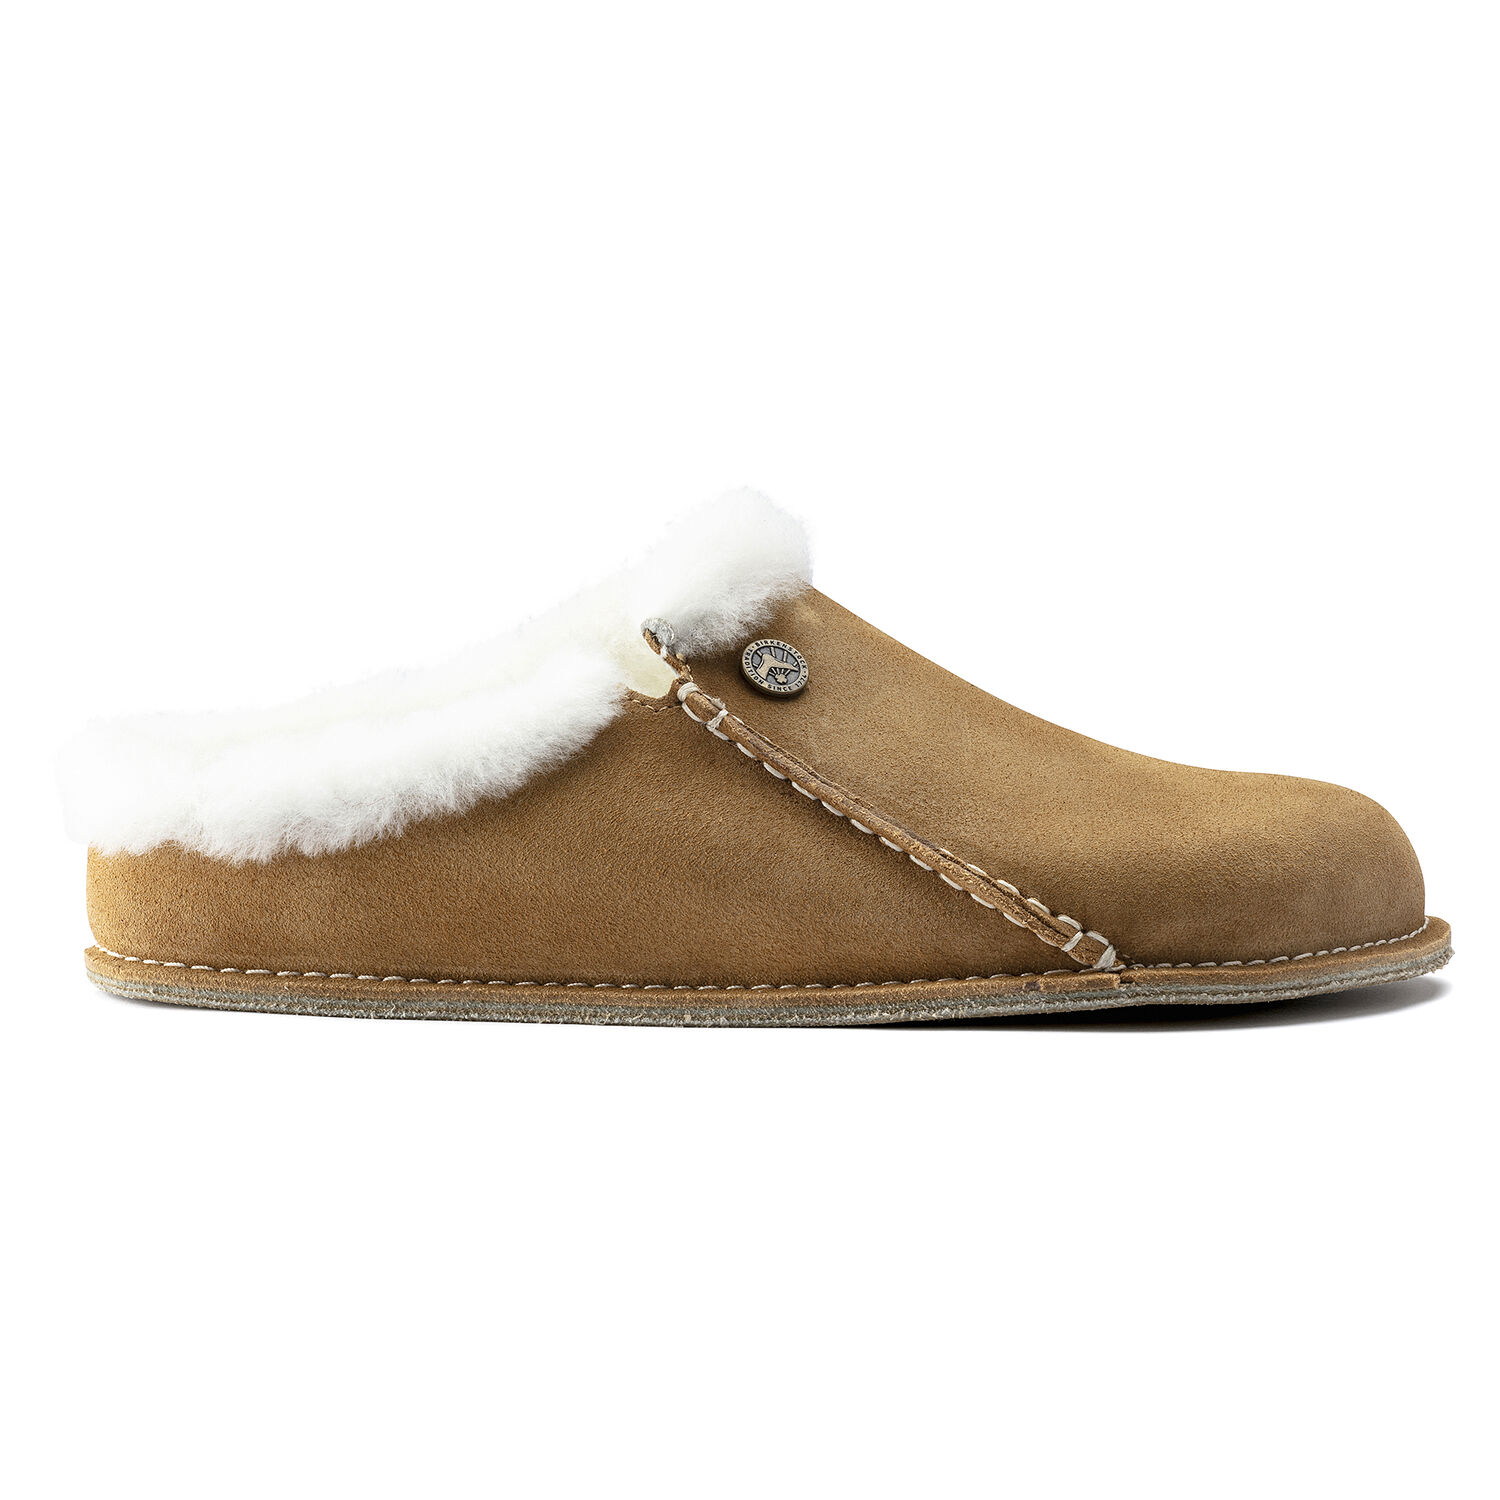 Zermatt Premium  Suede Leather